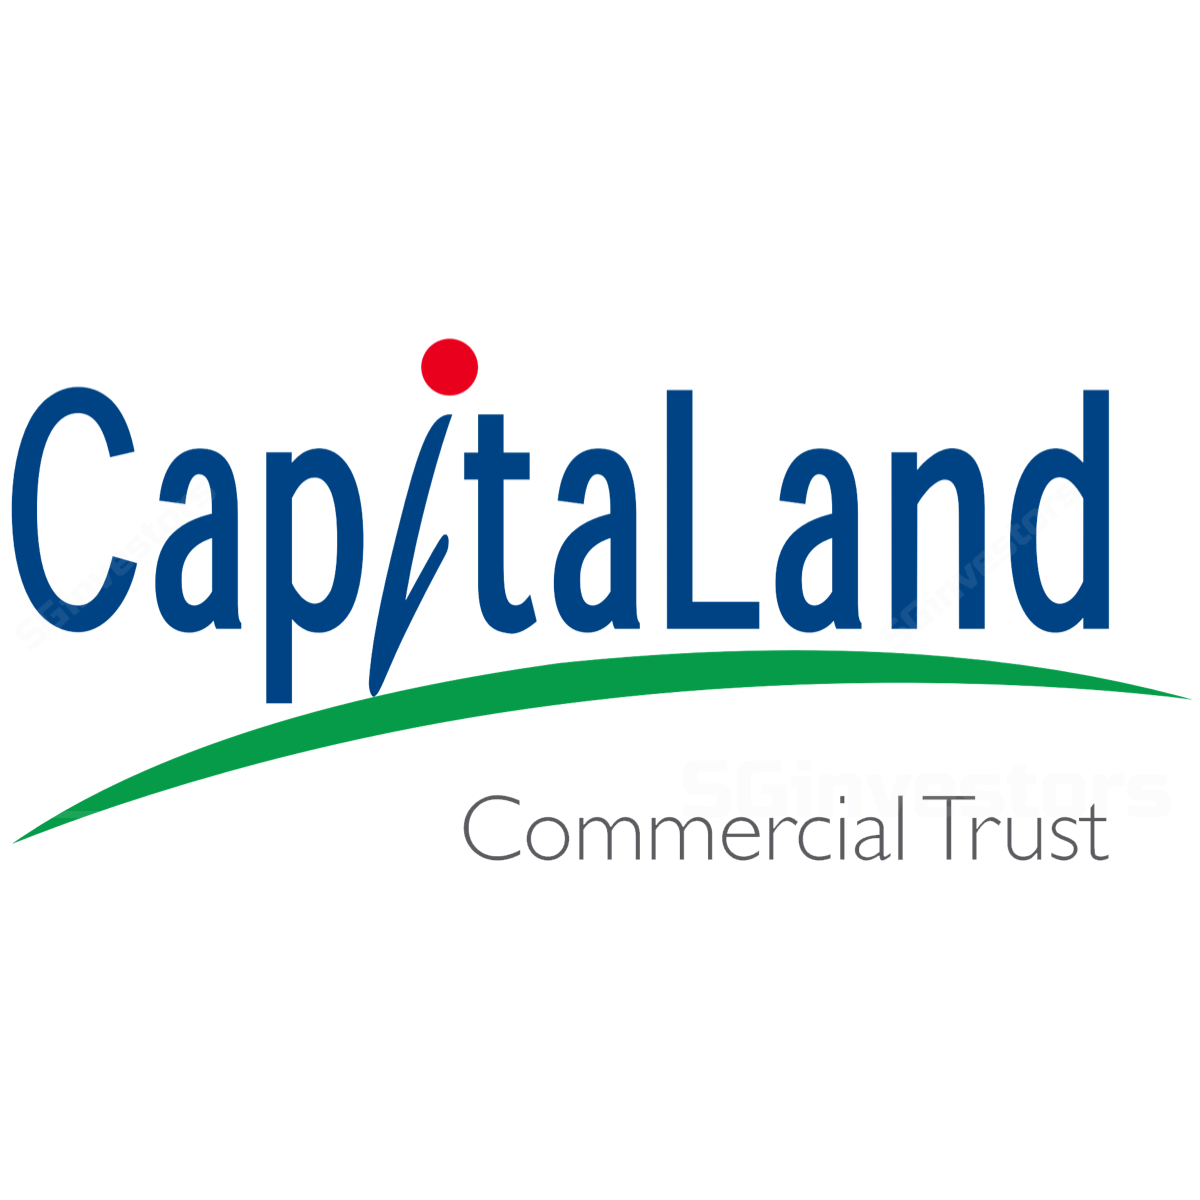 CapitaLand Commercial Trust (CCT SP) - Maybank Kim Eng 2017-05-02: Sale to Fund Next Phase